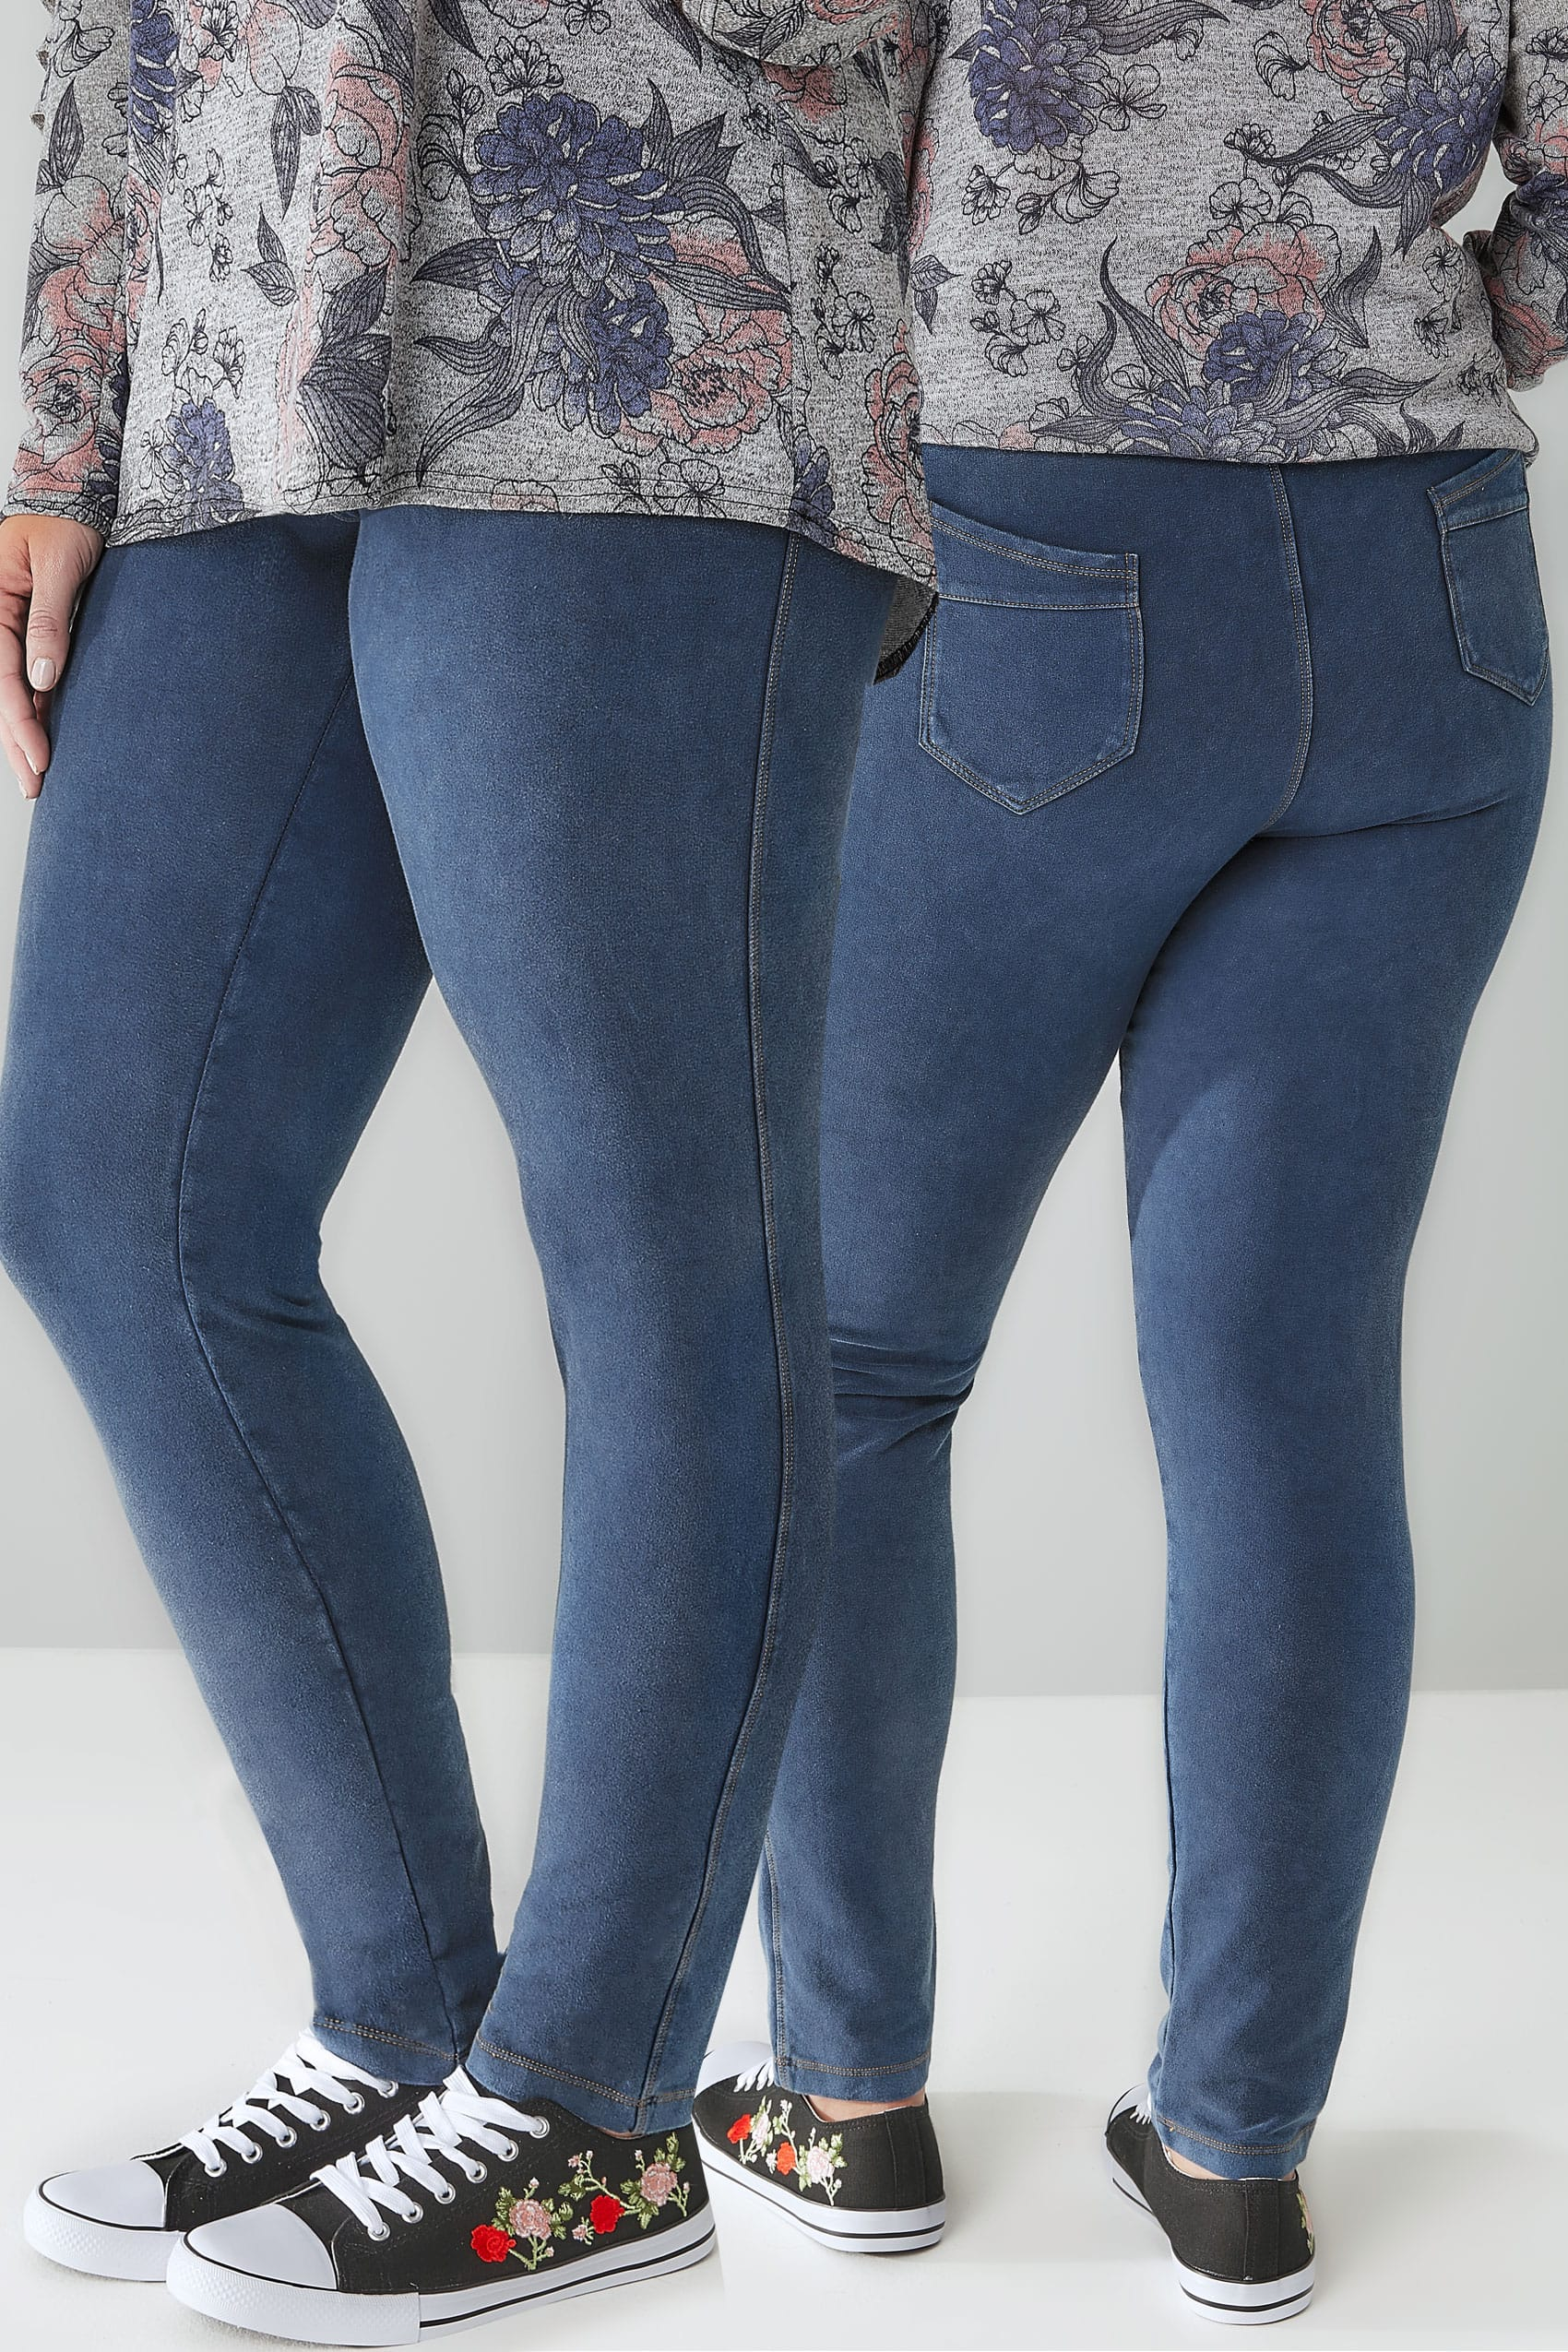 You can buy some great jeans and Jeggings for Women Online at Paytm Mall at unmatched prices. It has a vast collection of attractive and cool jeans in different styles, curated from several well-known brands including Allen Solly, United Colours of Benetton, Levi's, Park Avenue, Vero Moda, West rope etc.